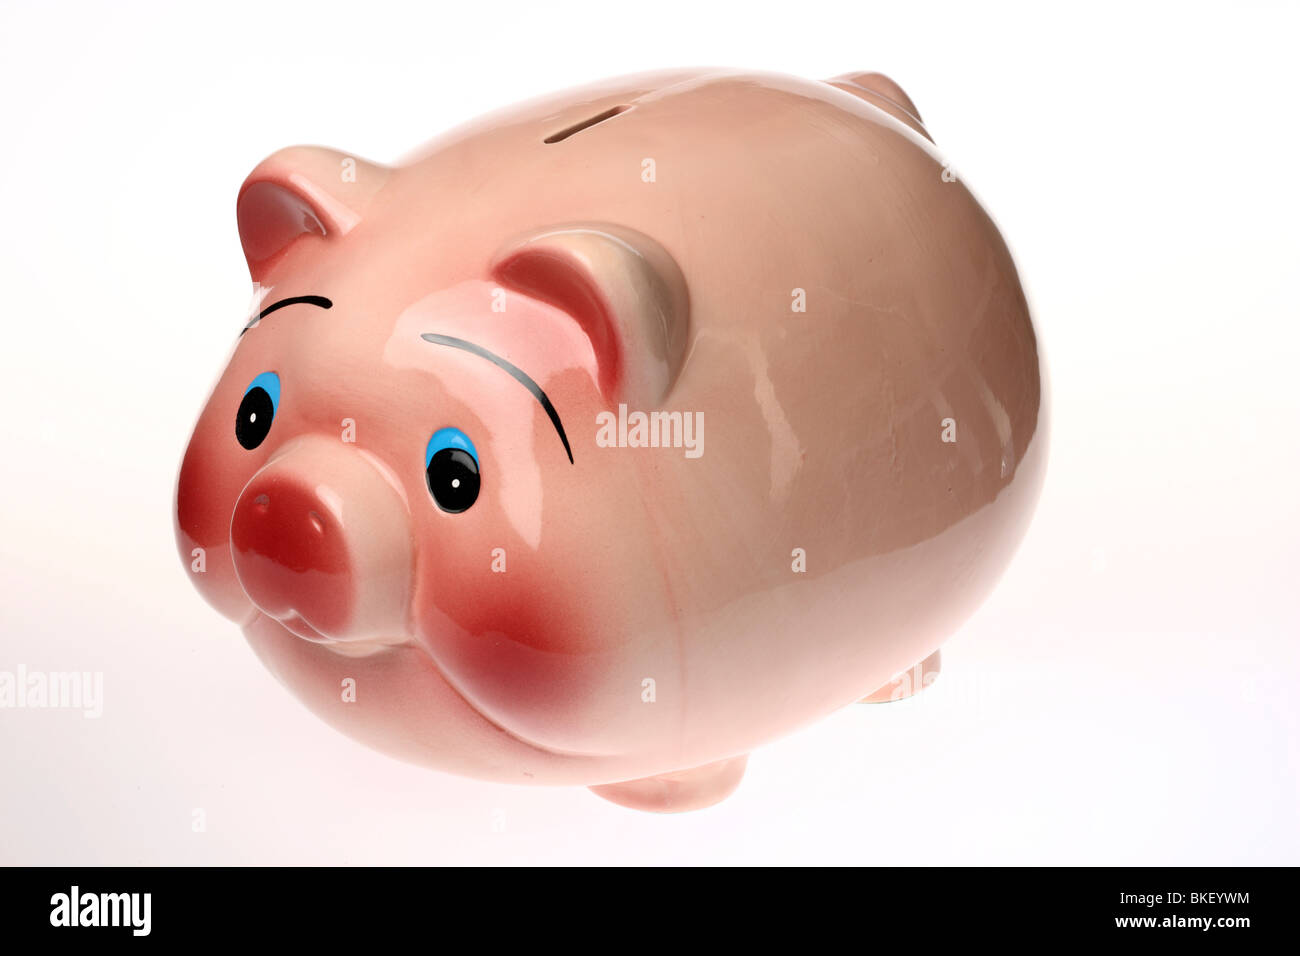 coin bank in form of a pig, ceramic - Stock Image